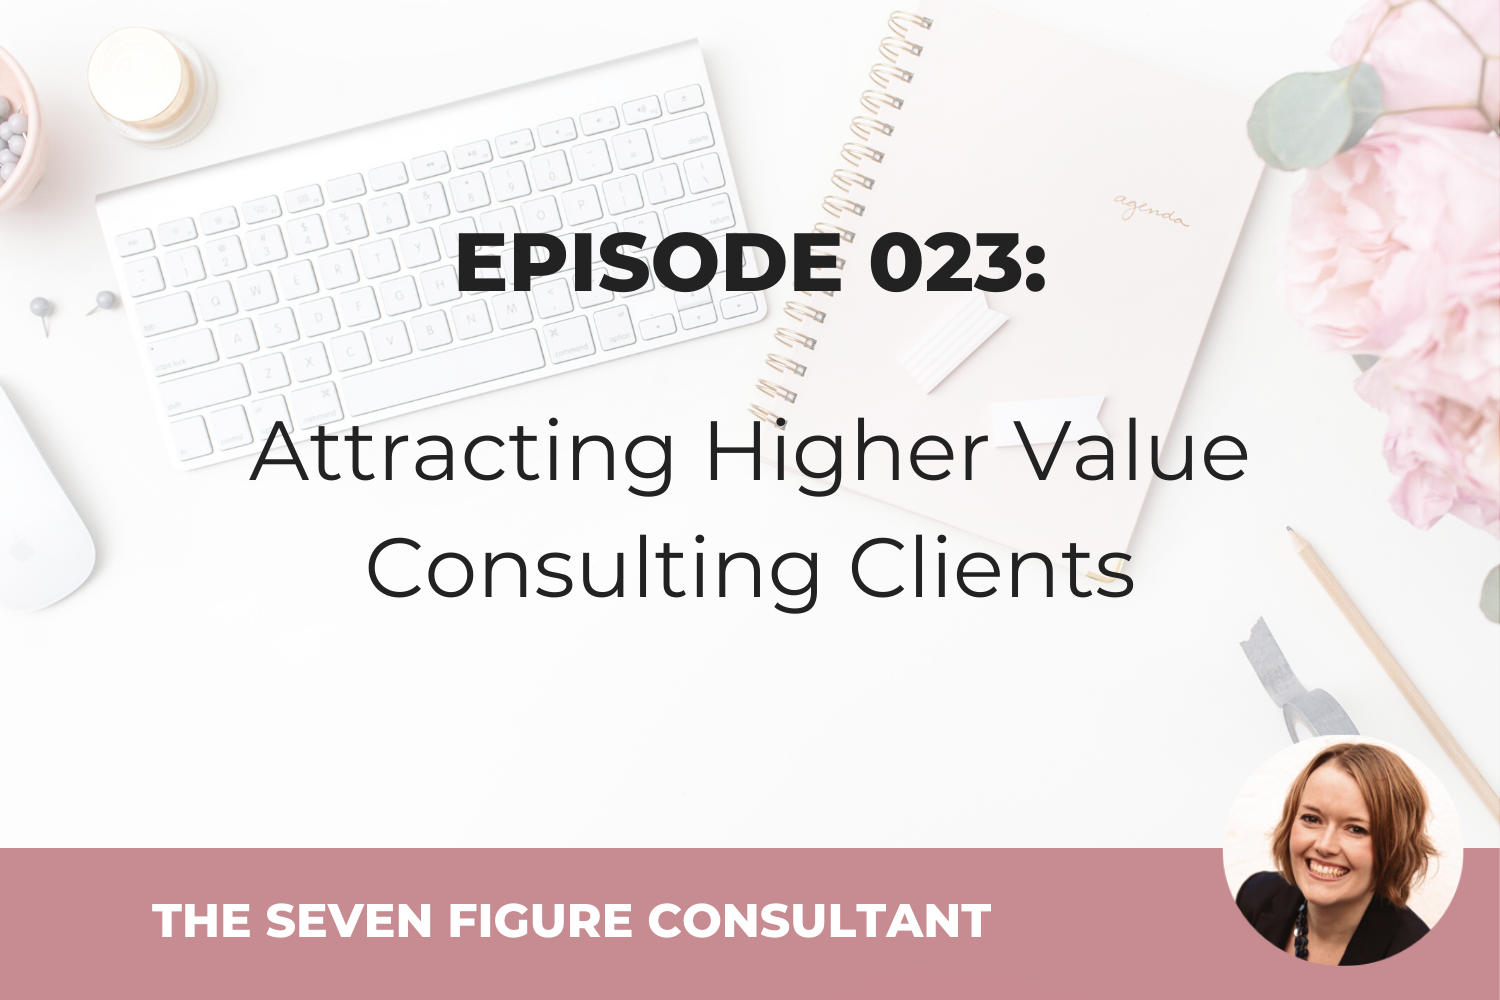 Episode 023: Attracting Higher Value Consulting Clients